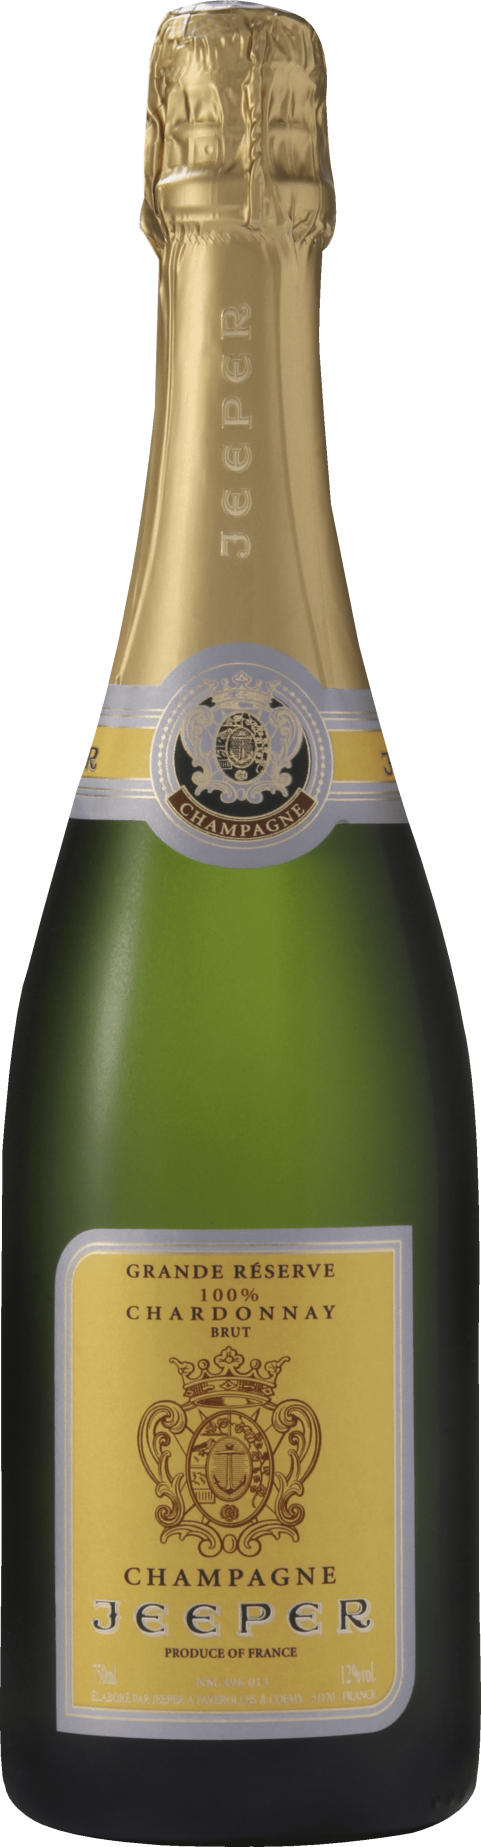 Champagne bottle png. Download images background toppng